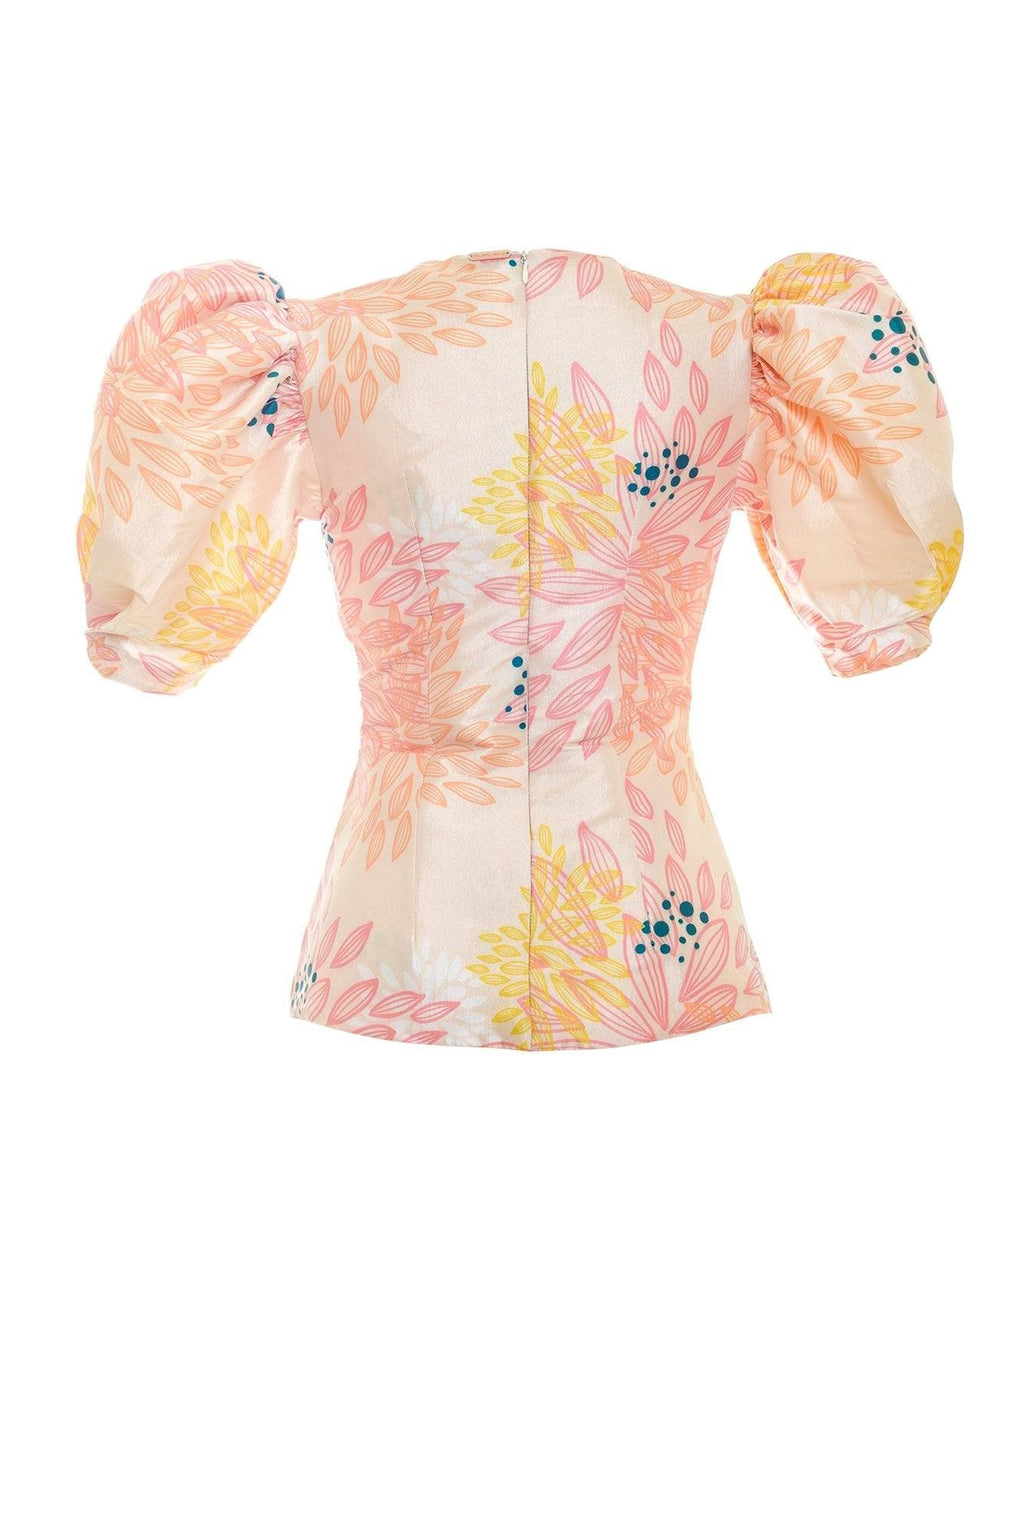 Peach Garceta Blouse - BYTRIBUTE